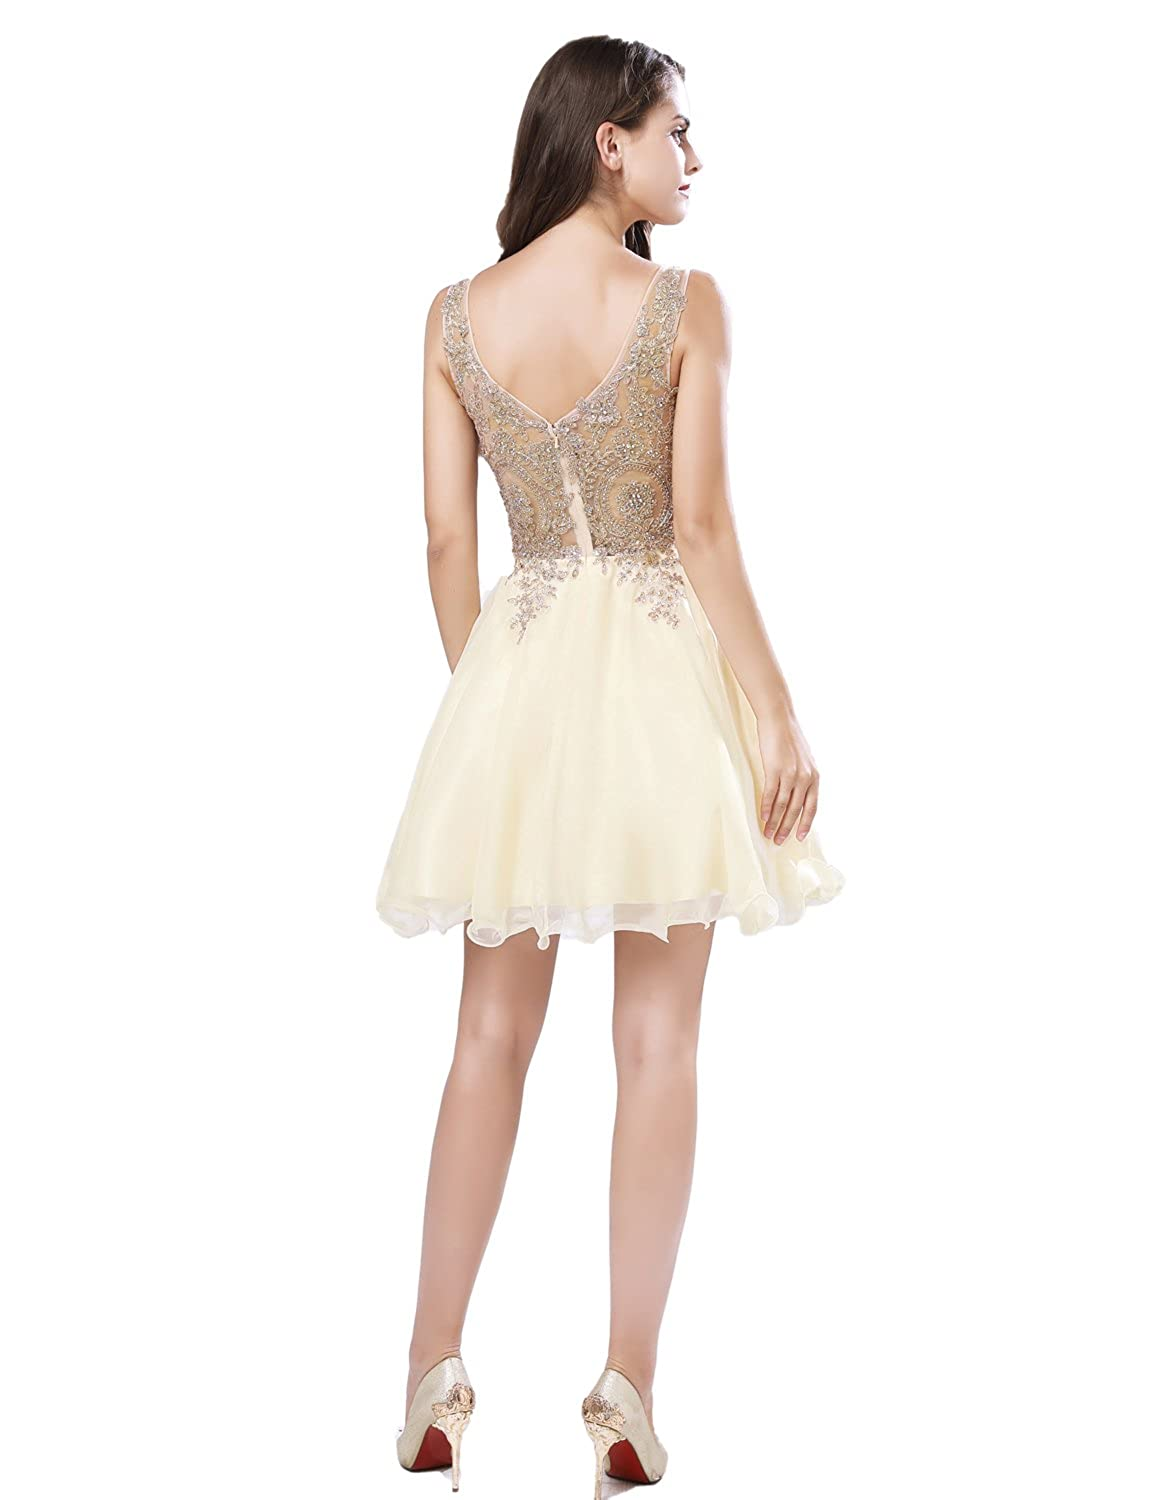 Belle House A Line Chiffon Homecoming Dresses 2019 Short for Juniors V Neck Prom Ball Gown with Beads